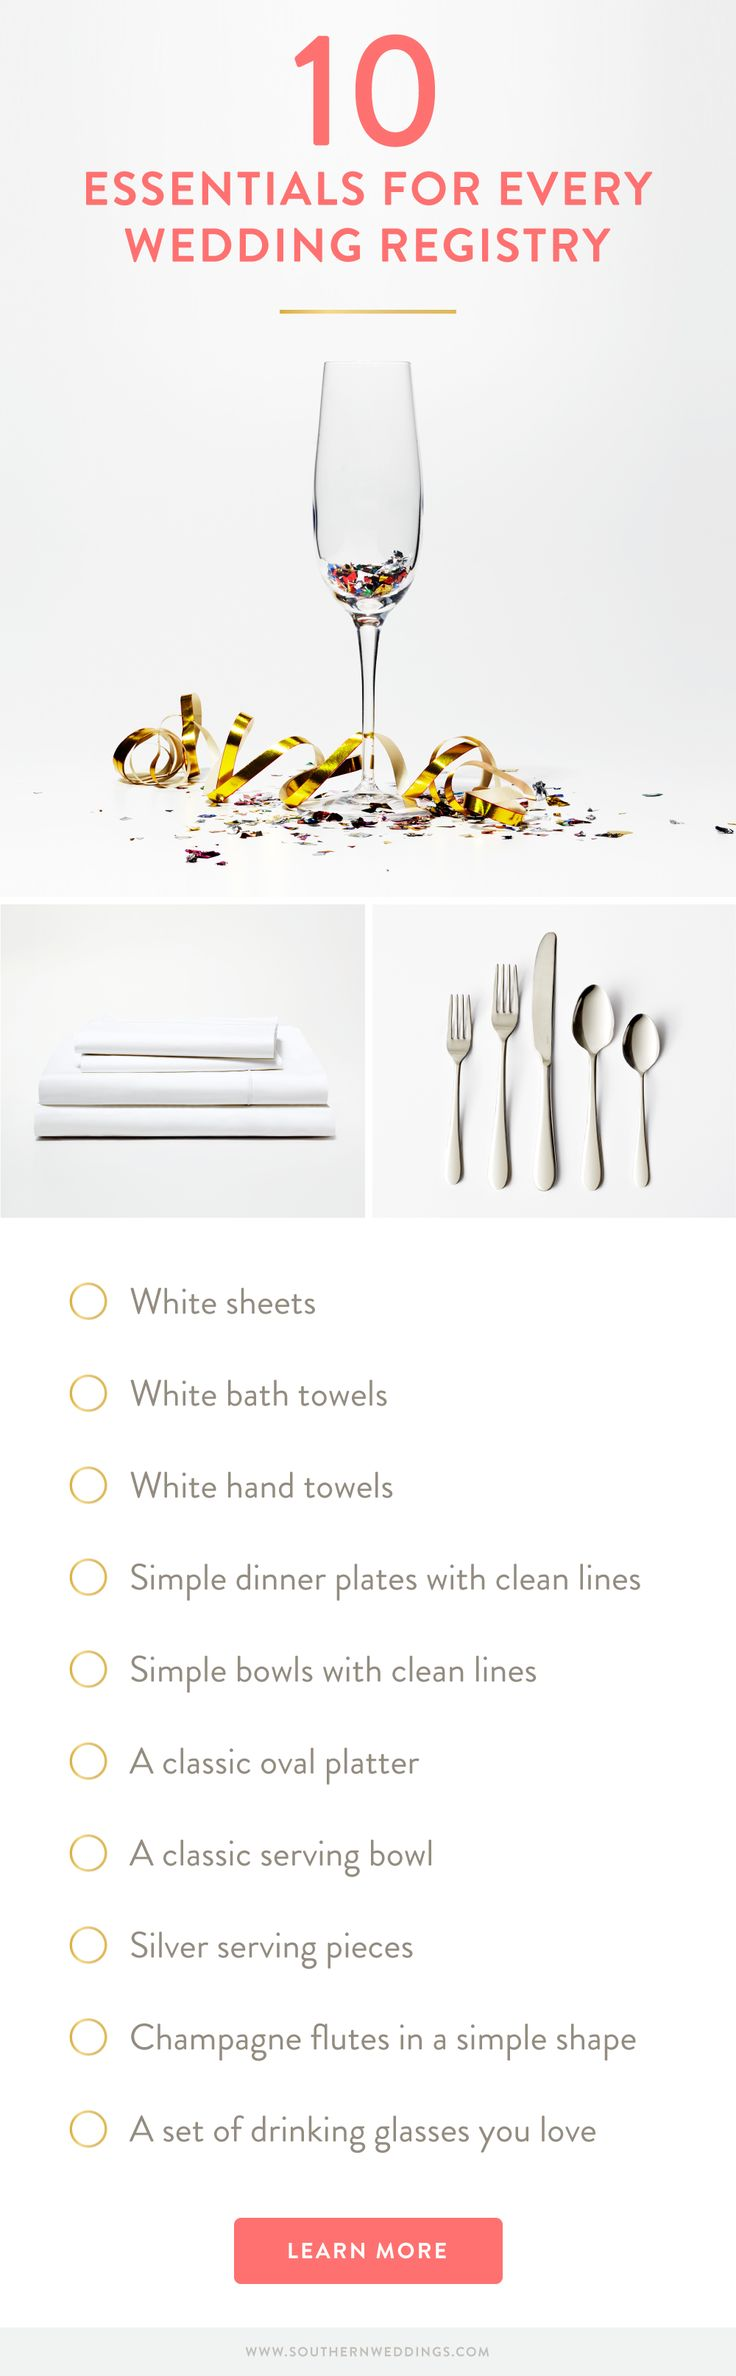 Snowe is a wonderfully minimalist source for simple, high quality home goods that would be the perfect backbone to any registry. Inspired by their collection, we came up with our master list of ten essentials for every Southern wedding registry to get you started!  http://southernweddings.com/2016/03/30/10-essentials-for-every-southern-wedding-registry/